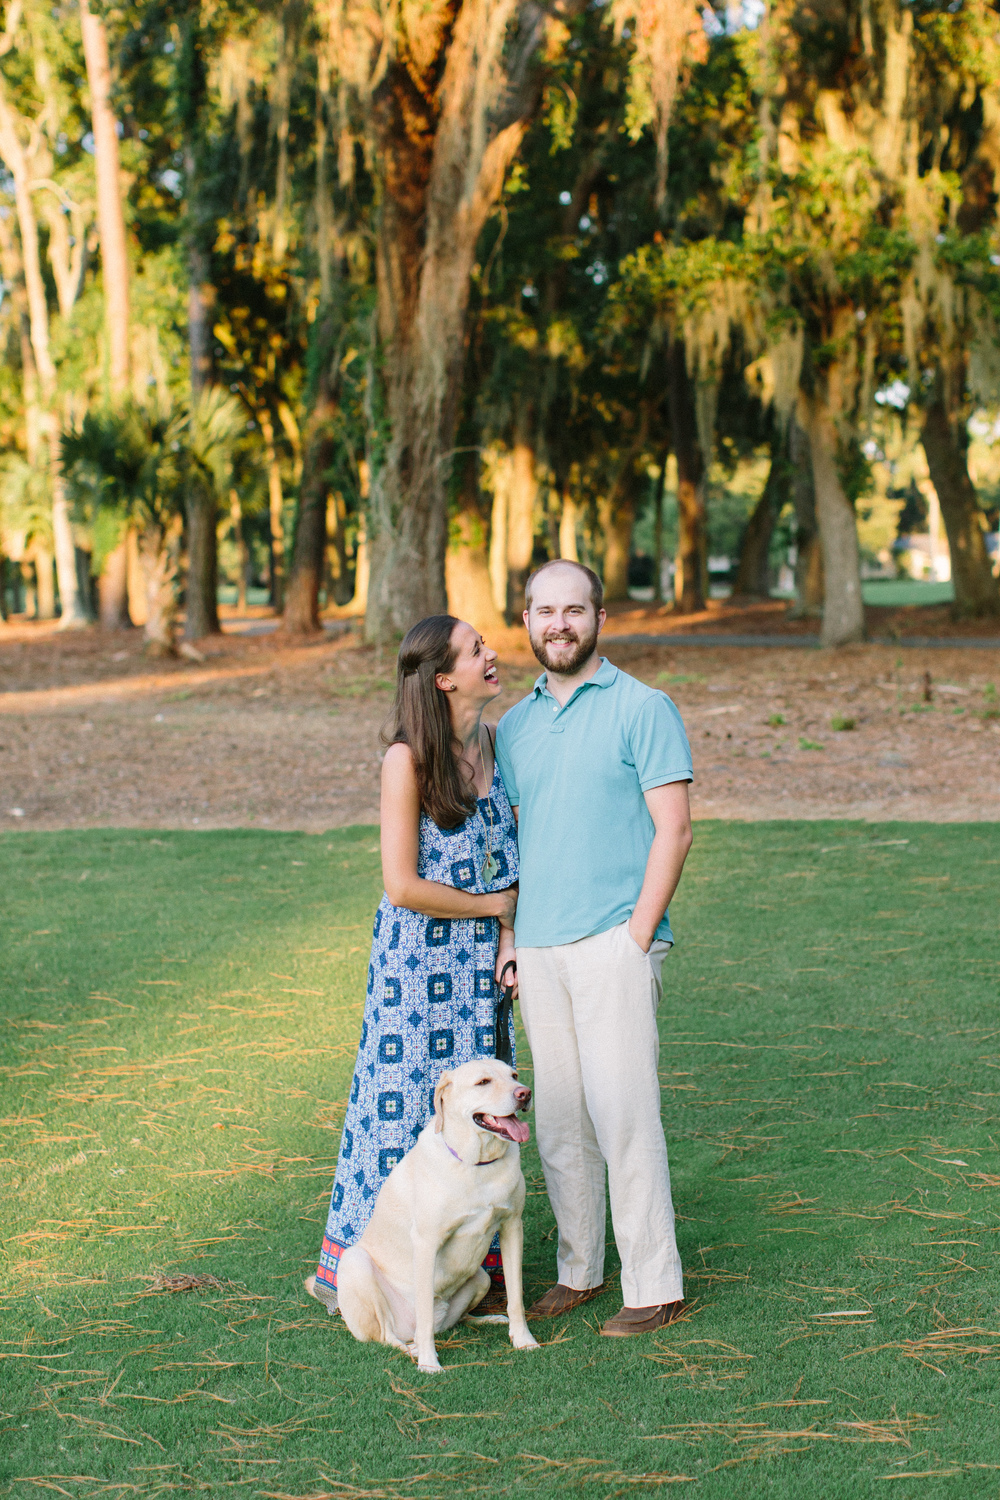 Lauren, her husband Chip, and their adorable pup, Sophie.